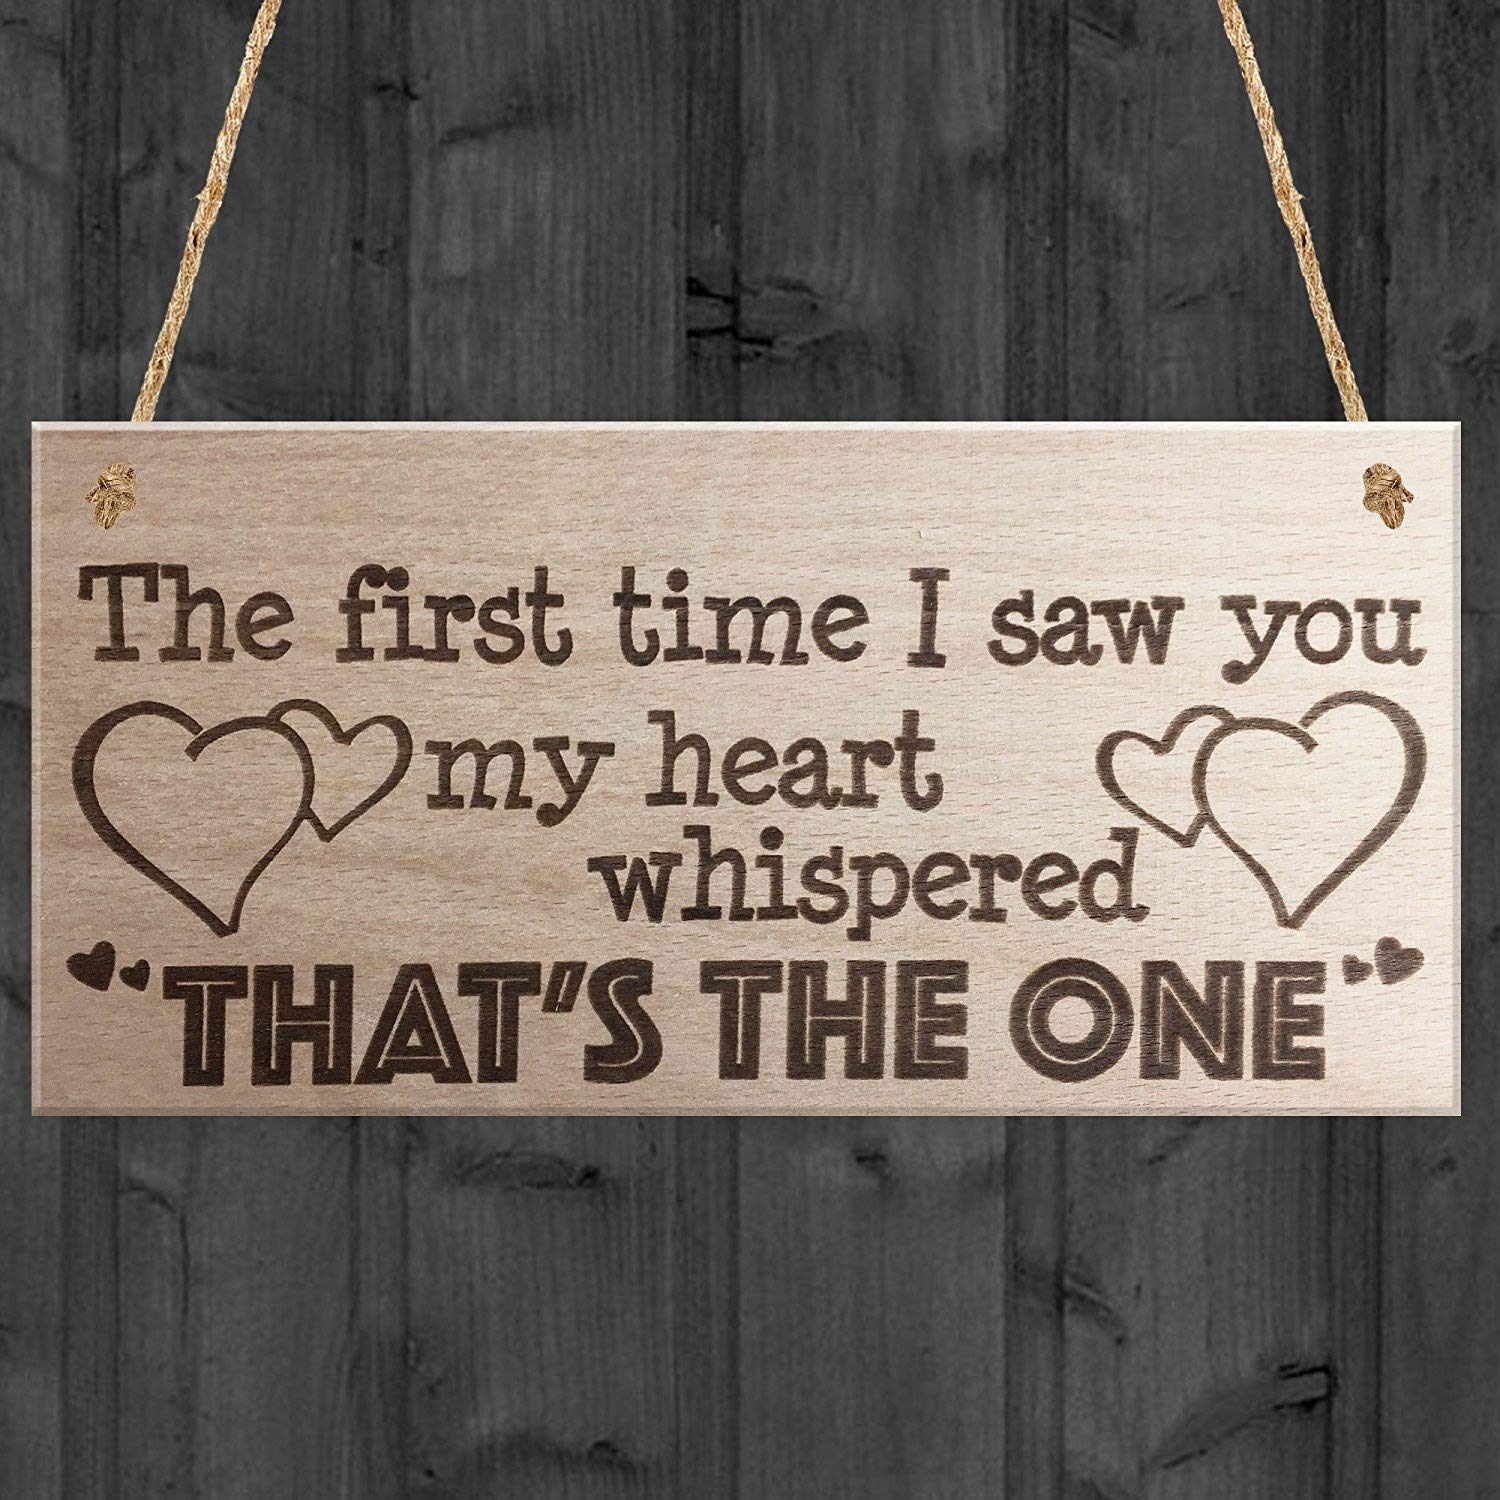 RED OCEAN The First Time I Saw You Wooden Hanging Plaque Soulmate Valentine Love Gift Sign